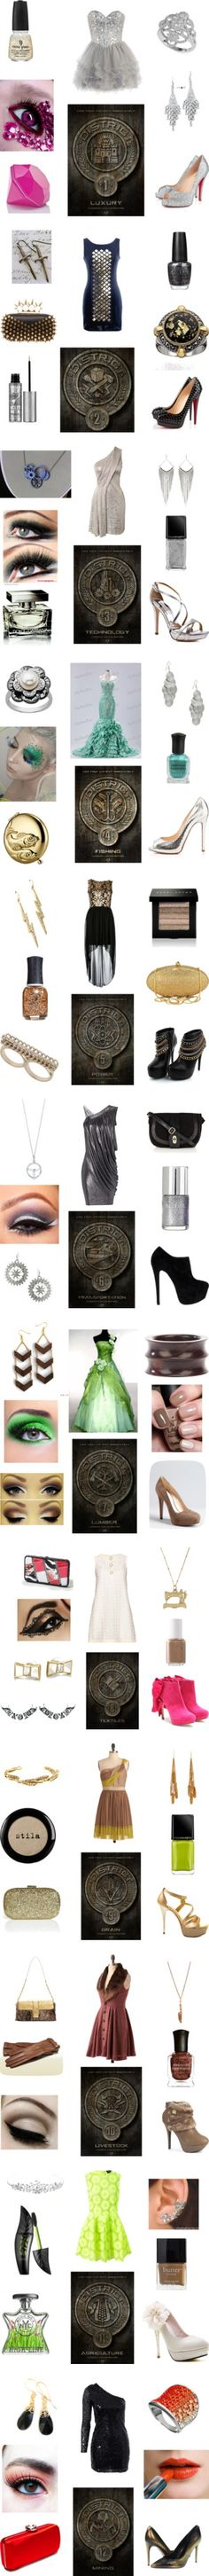 """The Hunger Games District Outfits For The Opening Ceremonies"" by heyitsbecca123 on Polyvore"